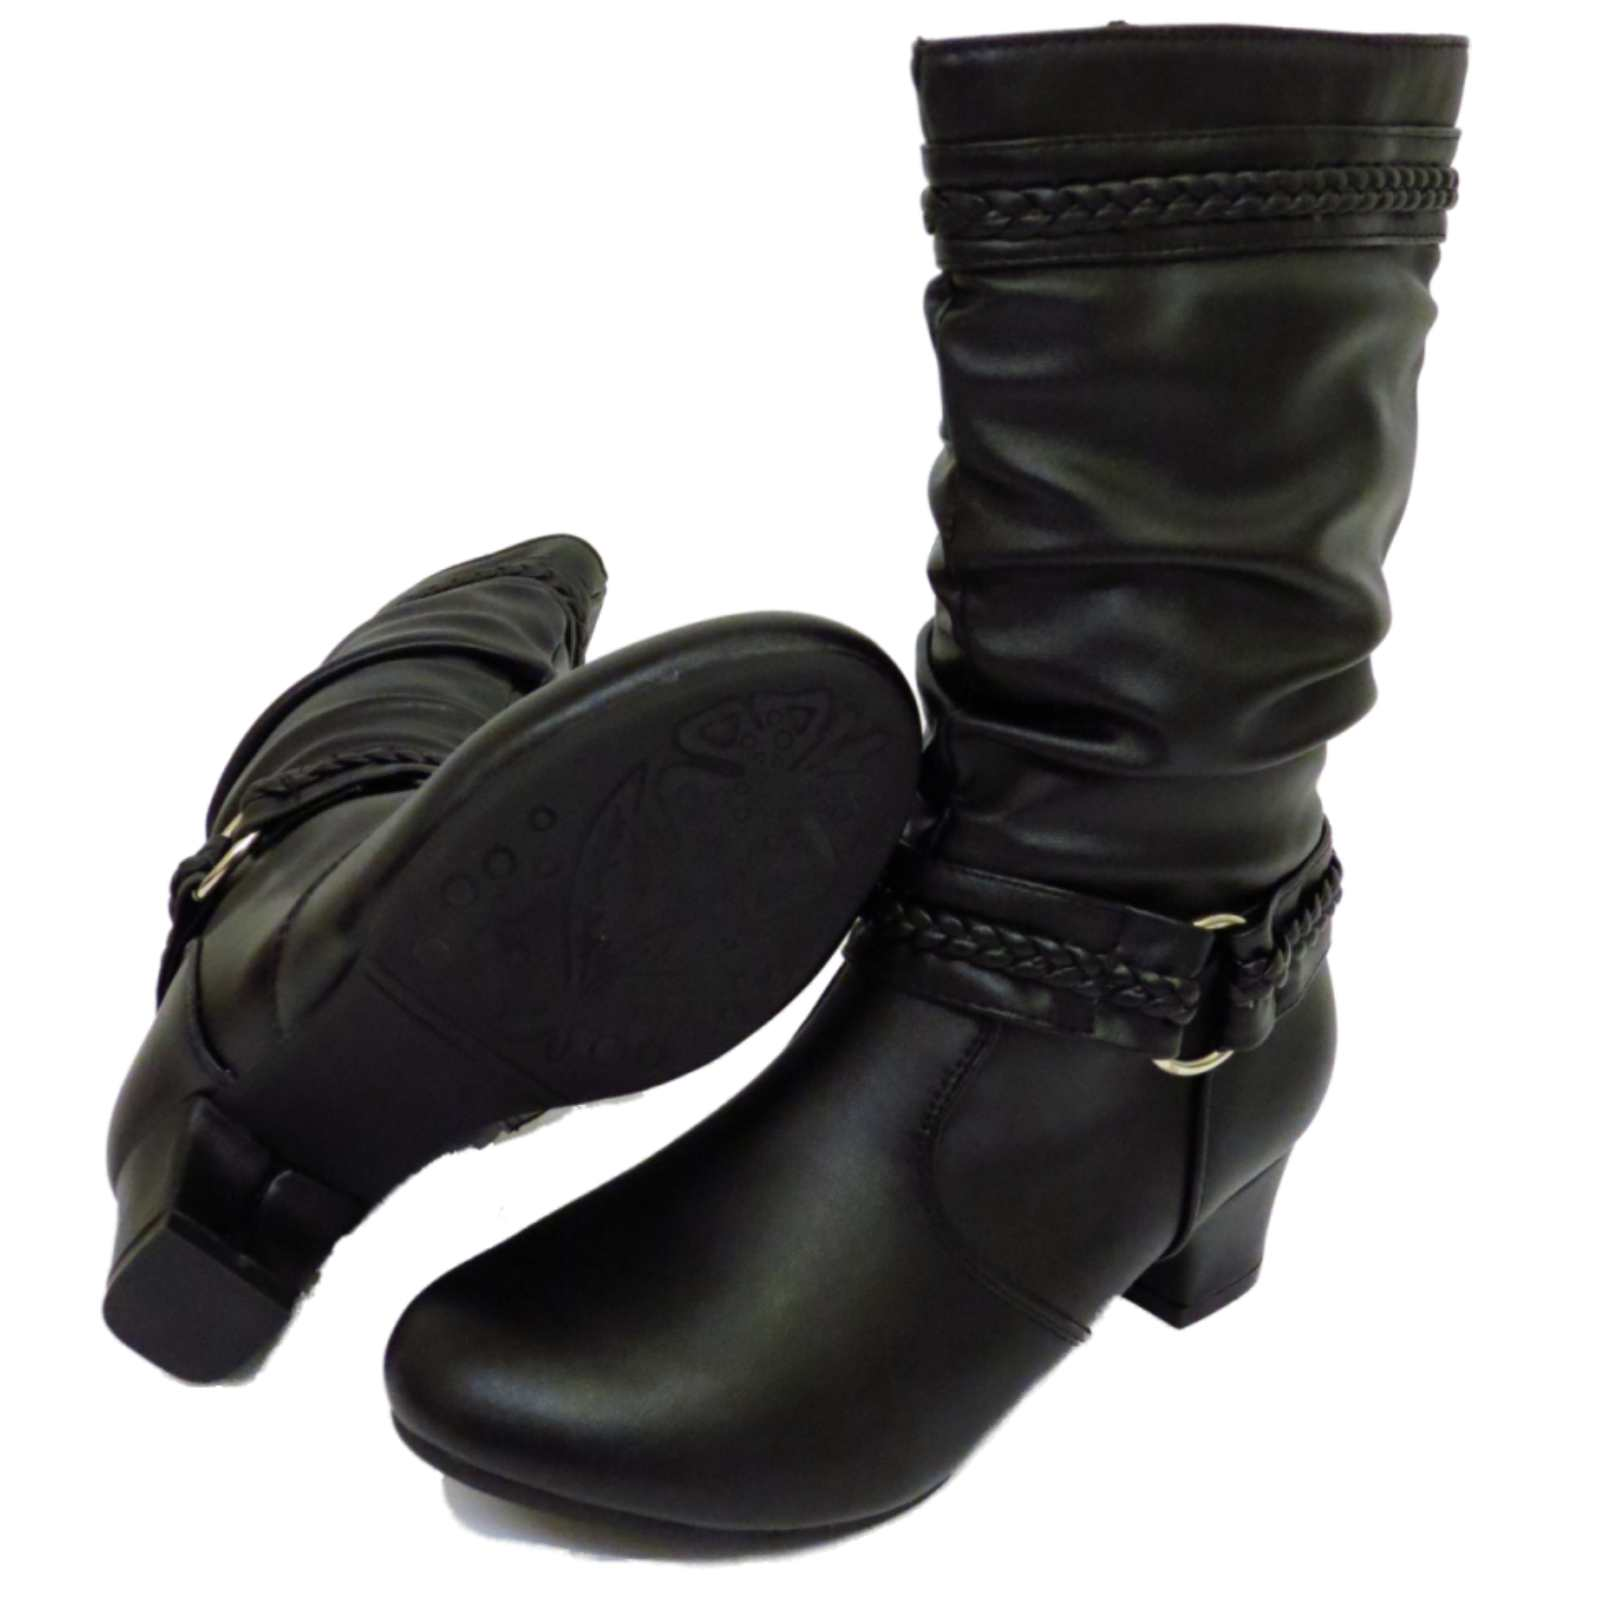 b5ce69e273d Sentinel GIRLS KIDS BLACK ZIP-UP KITTEN HEEL TALL RUCHED FASHION BOOTS  CHILDRENS SHOES 9-